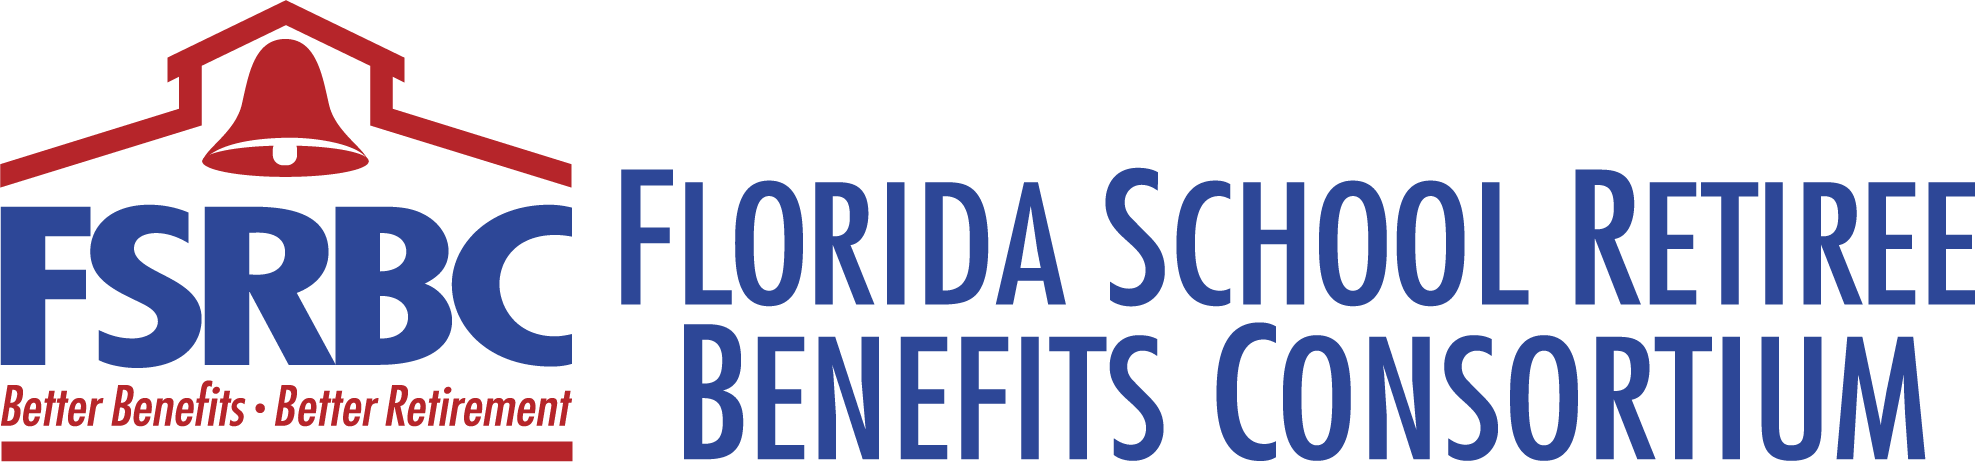 Florida School Retiree Benefits Consortium (FSRBC)